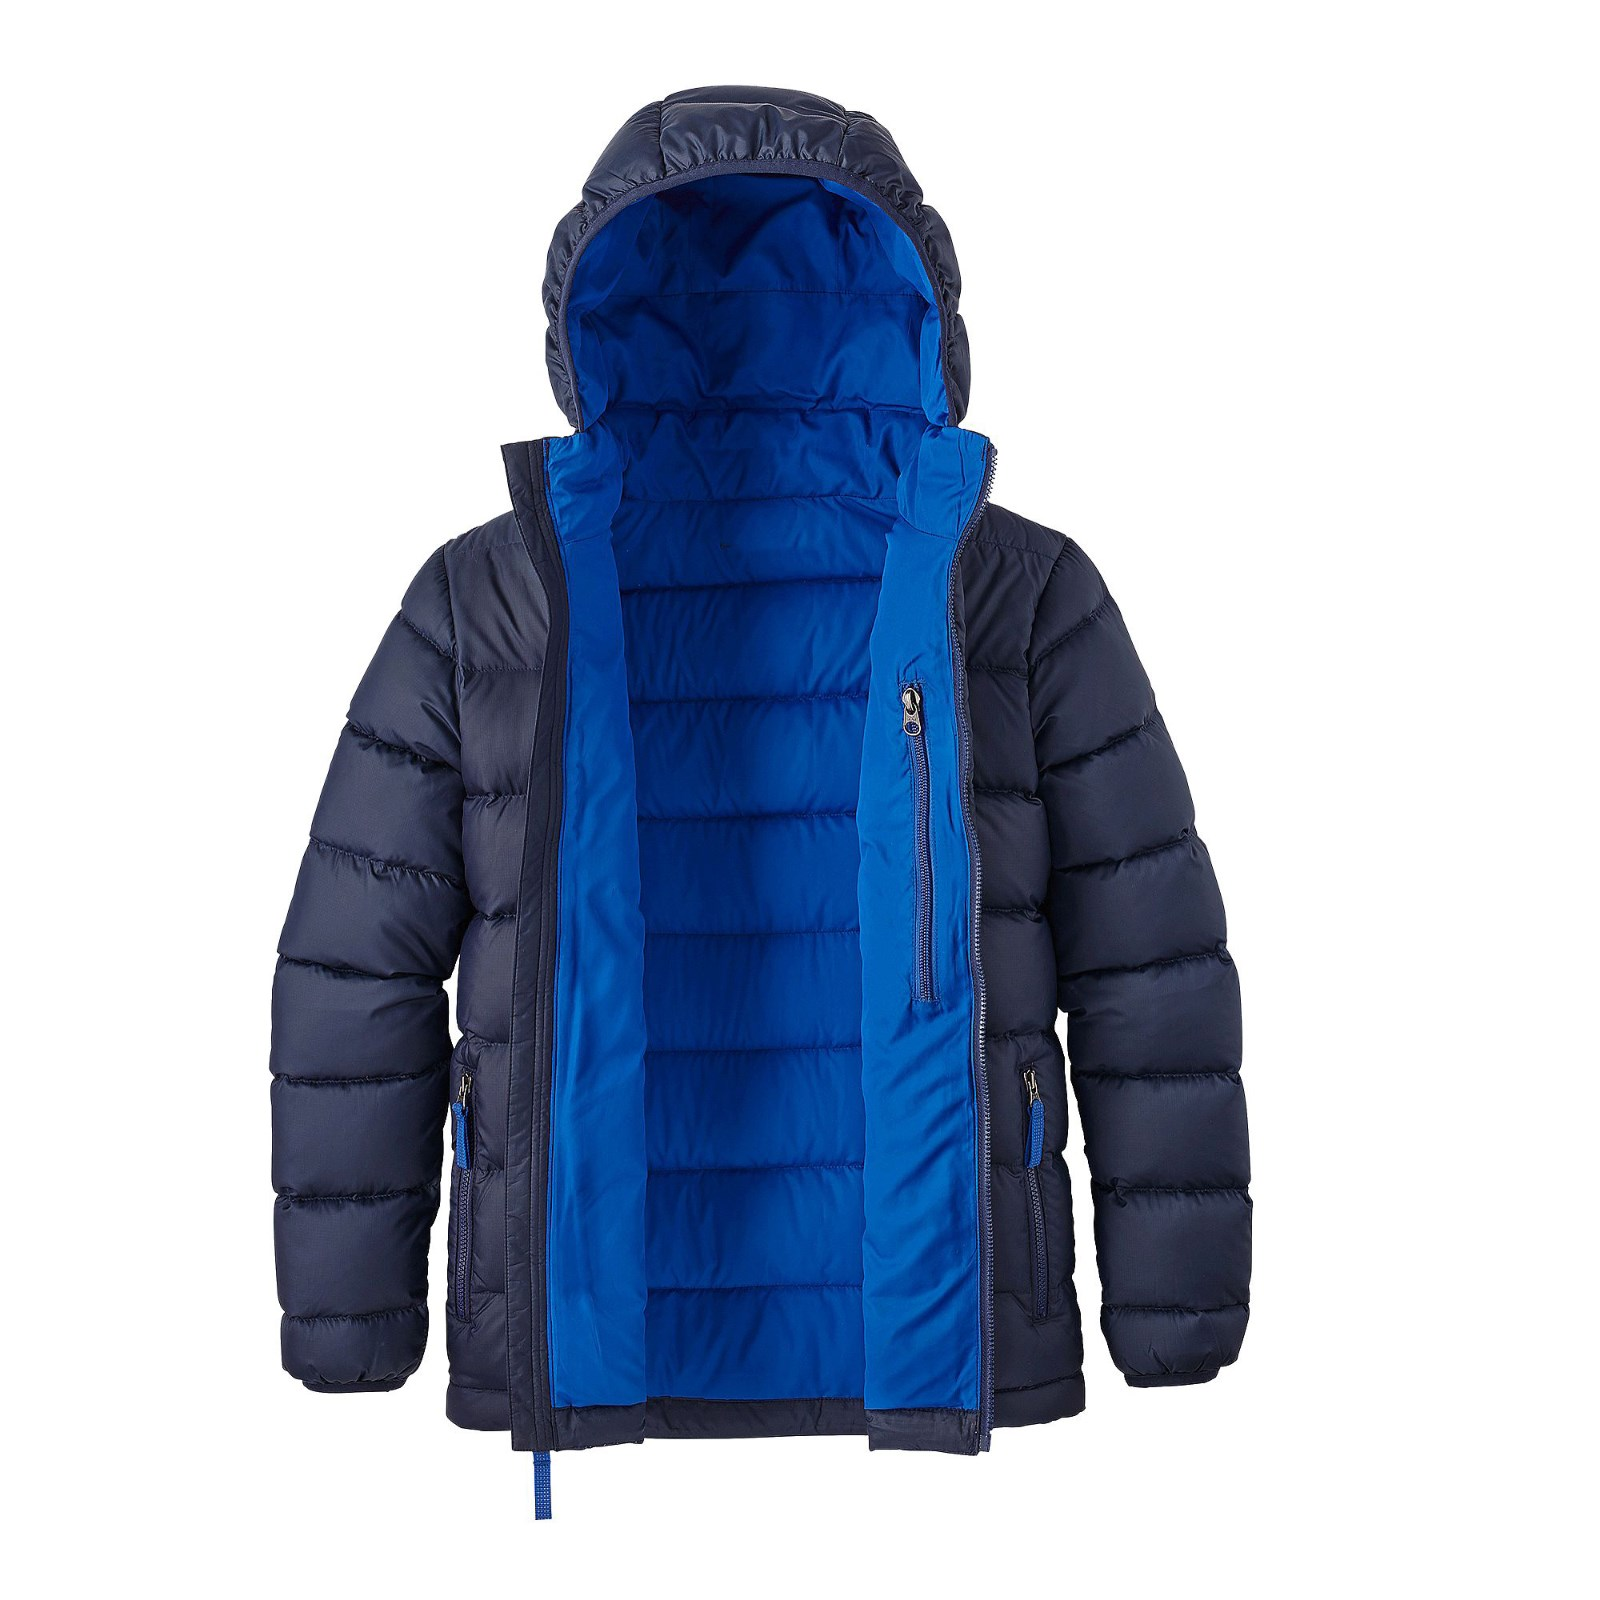 Boys' Hi-loft Down Jacket Hoody Manufacturers, Boys' Hi-loft Down Jacket Hoody Factory, Supply Boys' Hi-loft Down Jacket Hoody